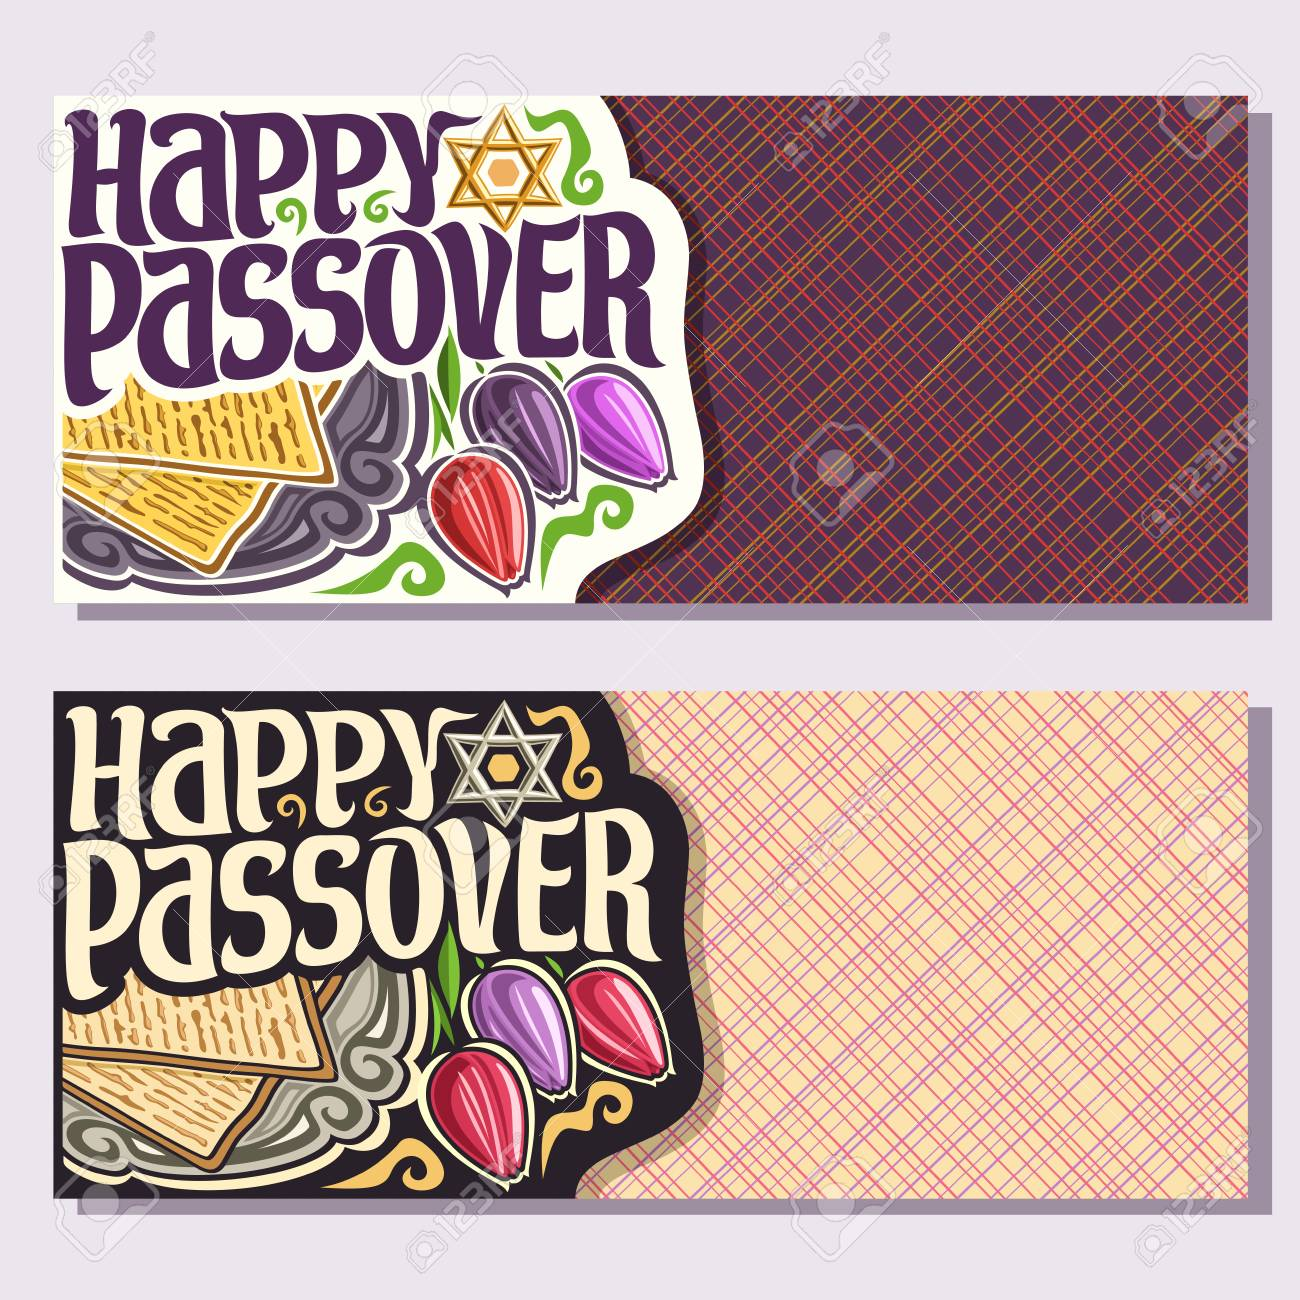 Vector Greeting Cards For Passover Holiday With Copy Space